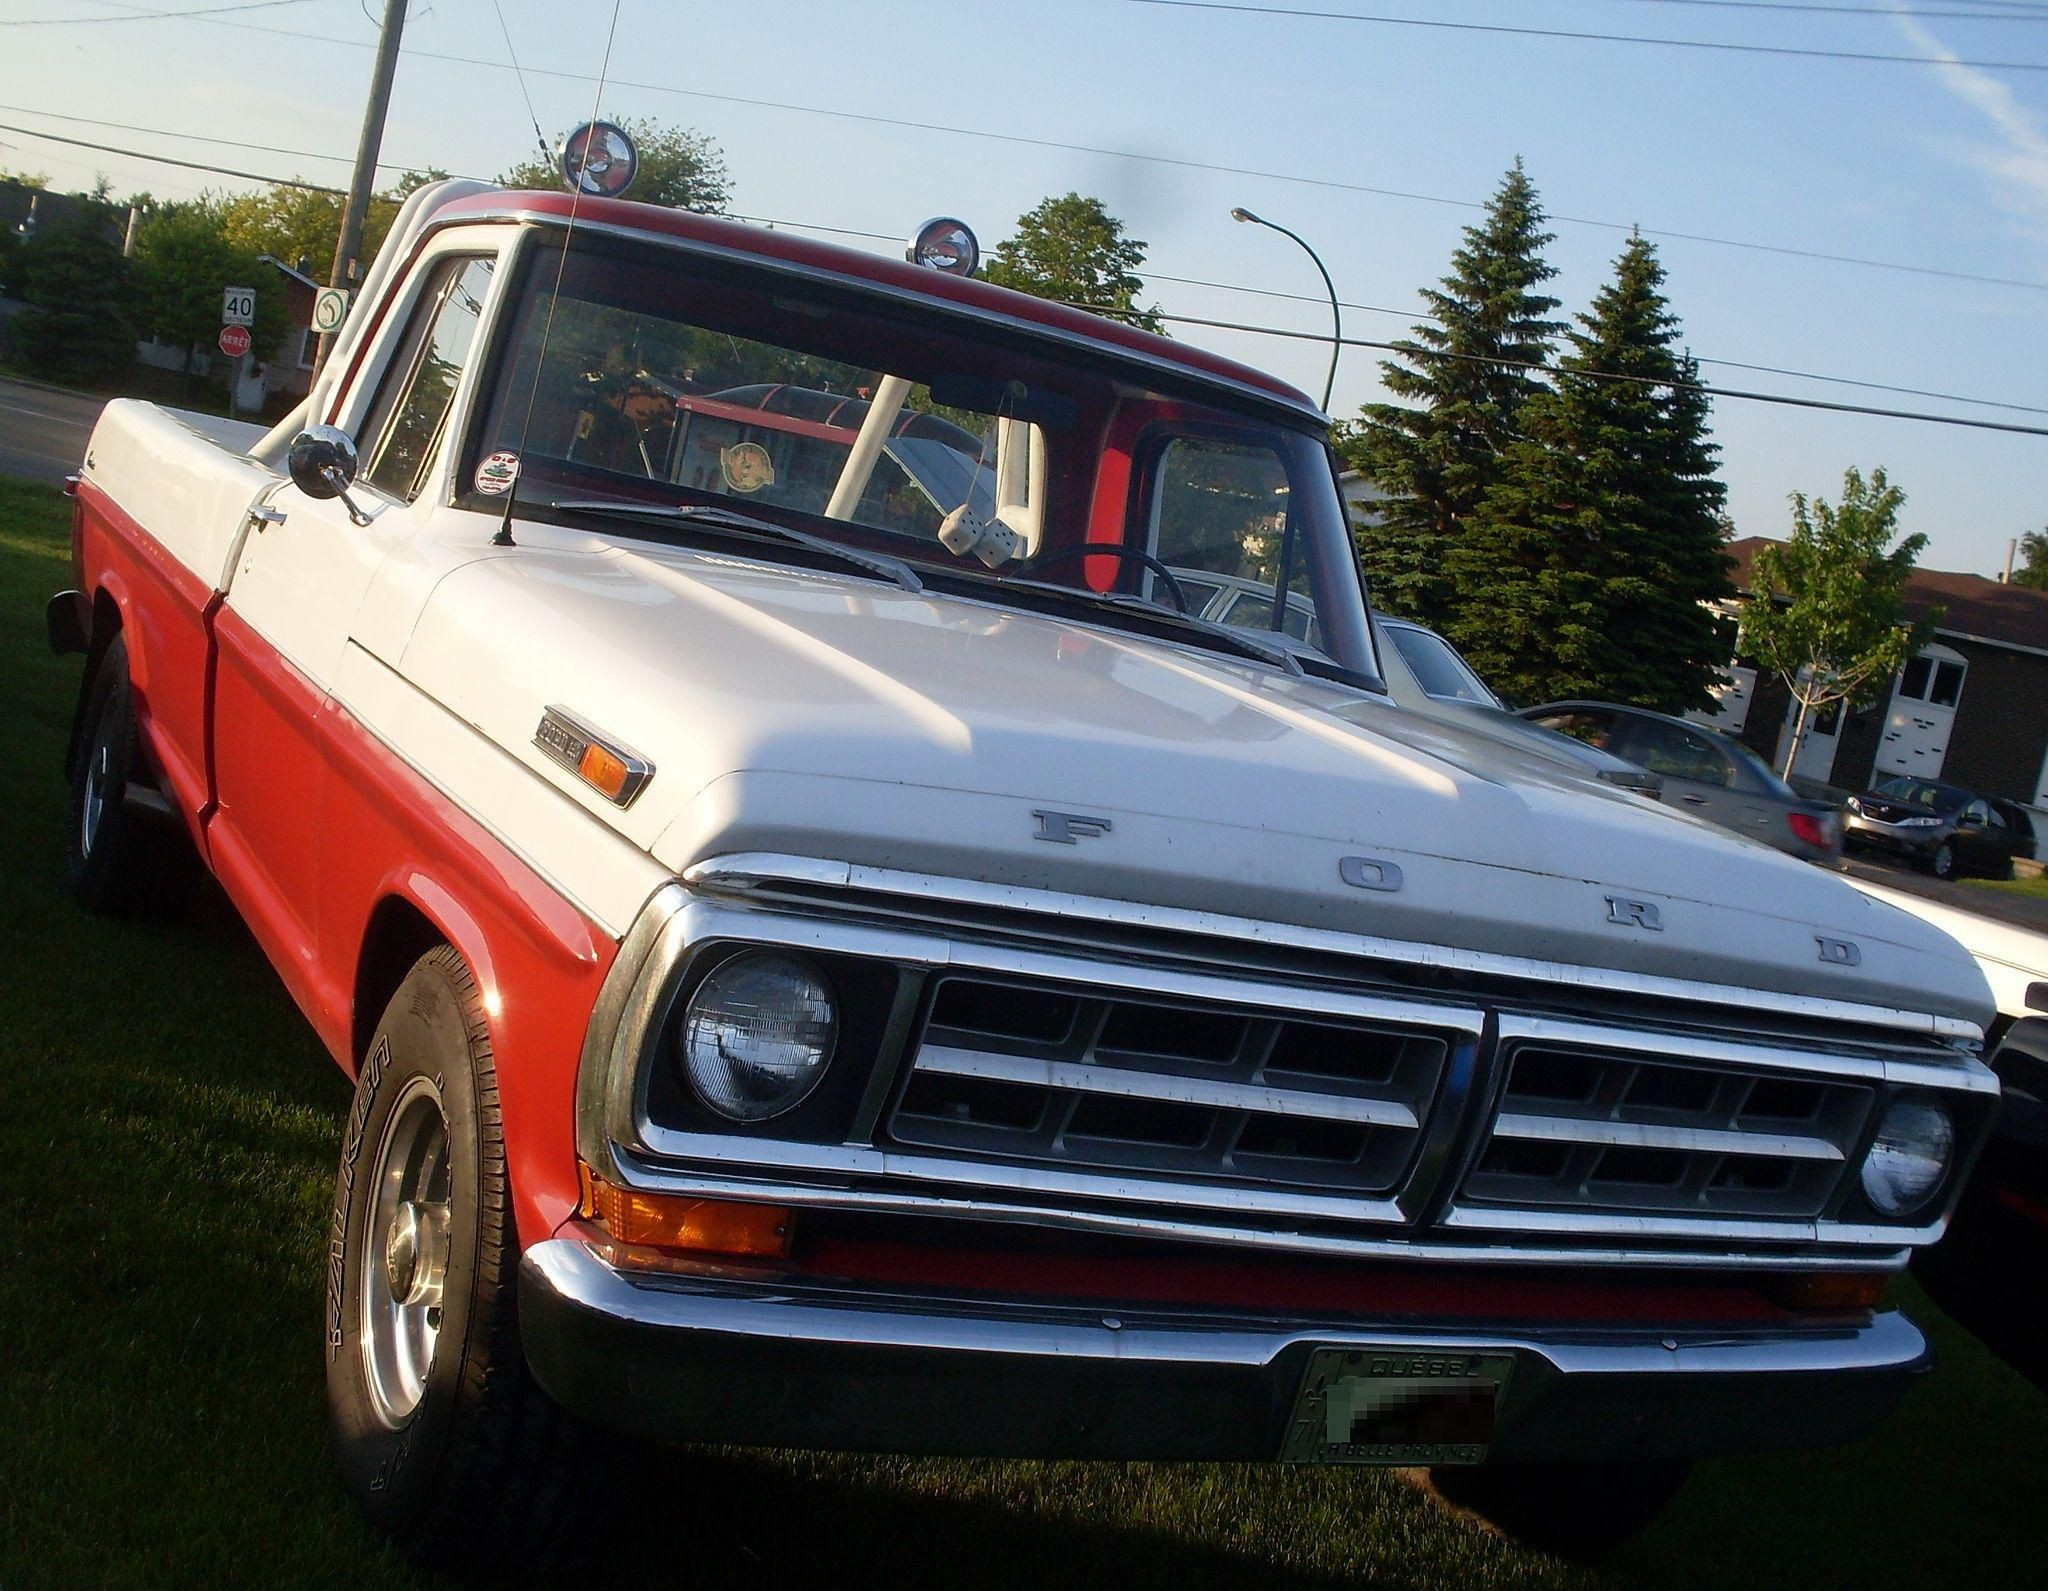 2004 ford F150 4 6 Engine Diagram ford F Series Pickup Truck History From 1973 1979 Of 2004 ford F150 4 6 Engine Diagram